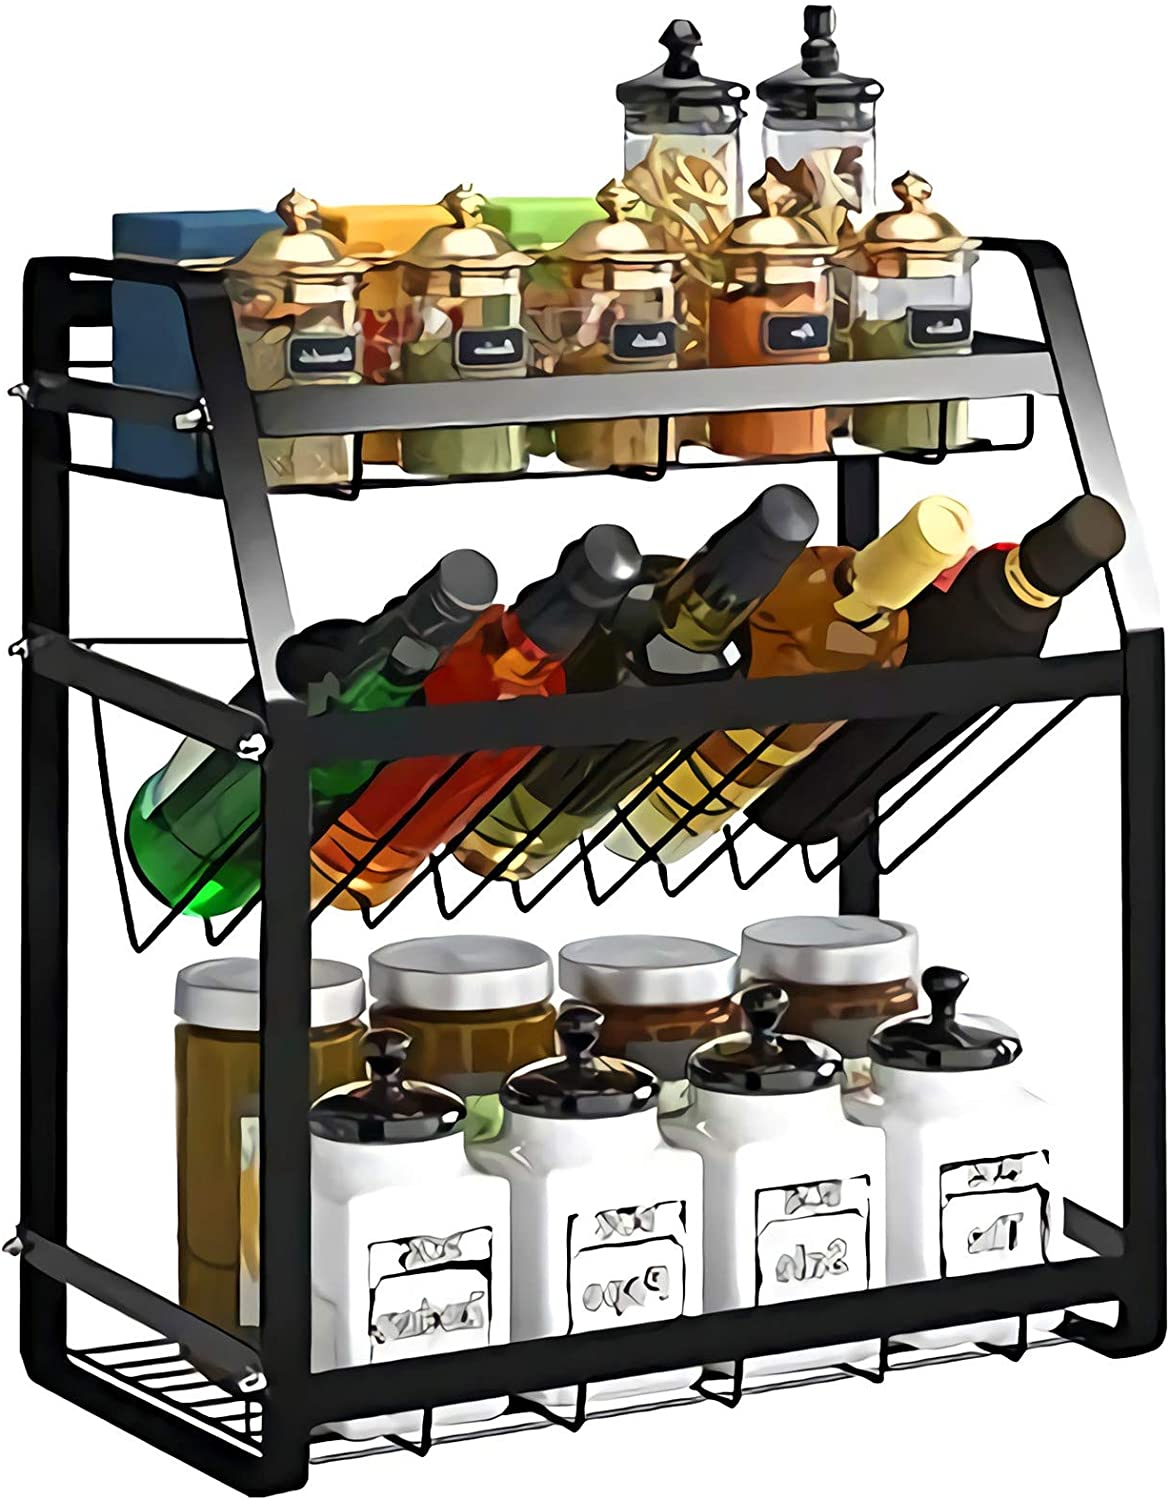 Spice Rack 3-Tier Kitchen Countertop standing Storage Organizer or Wall Mount Spice Rack Organizer Bathroom Shelf Holder Hanging Racks Seasoning Organizer For Your Kitchen Cabinet, Cupboard or Pantry Door